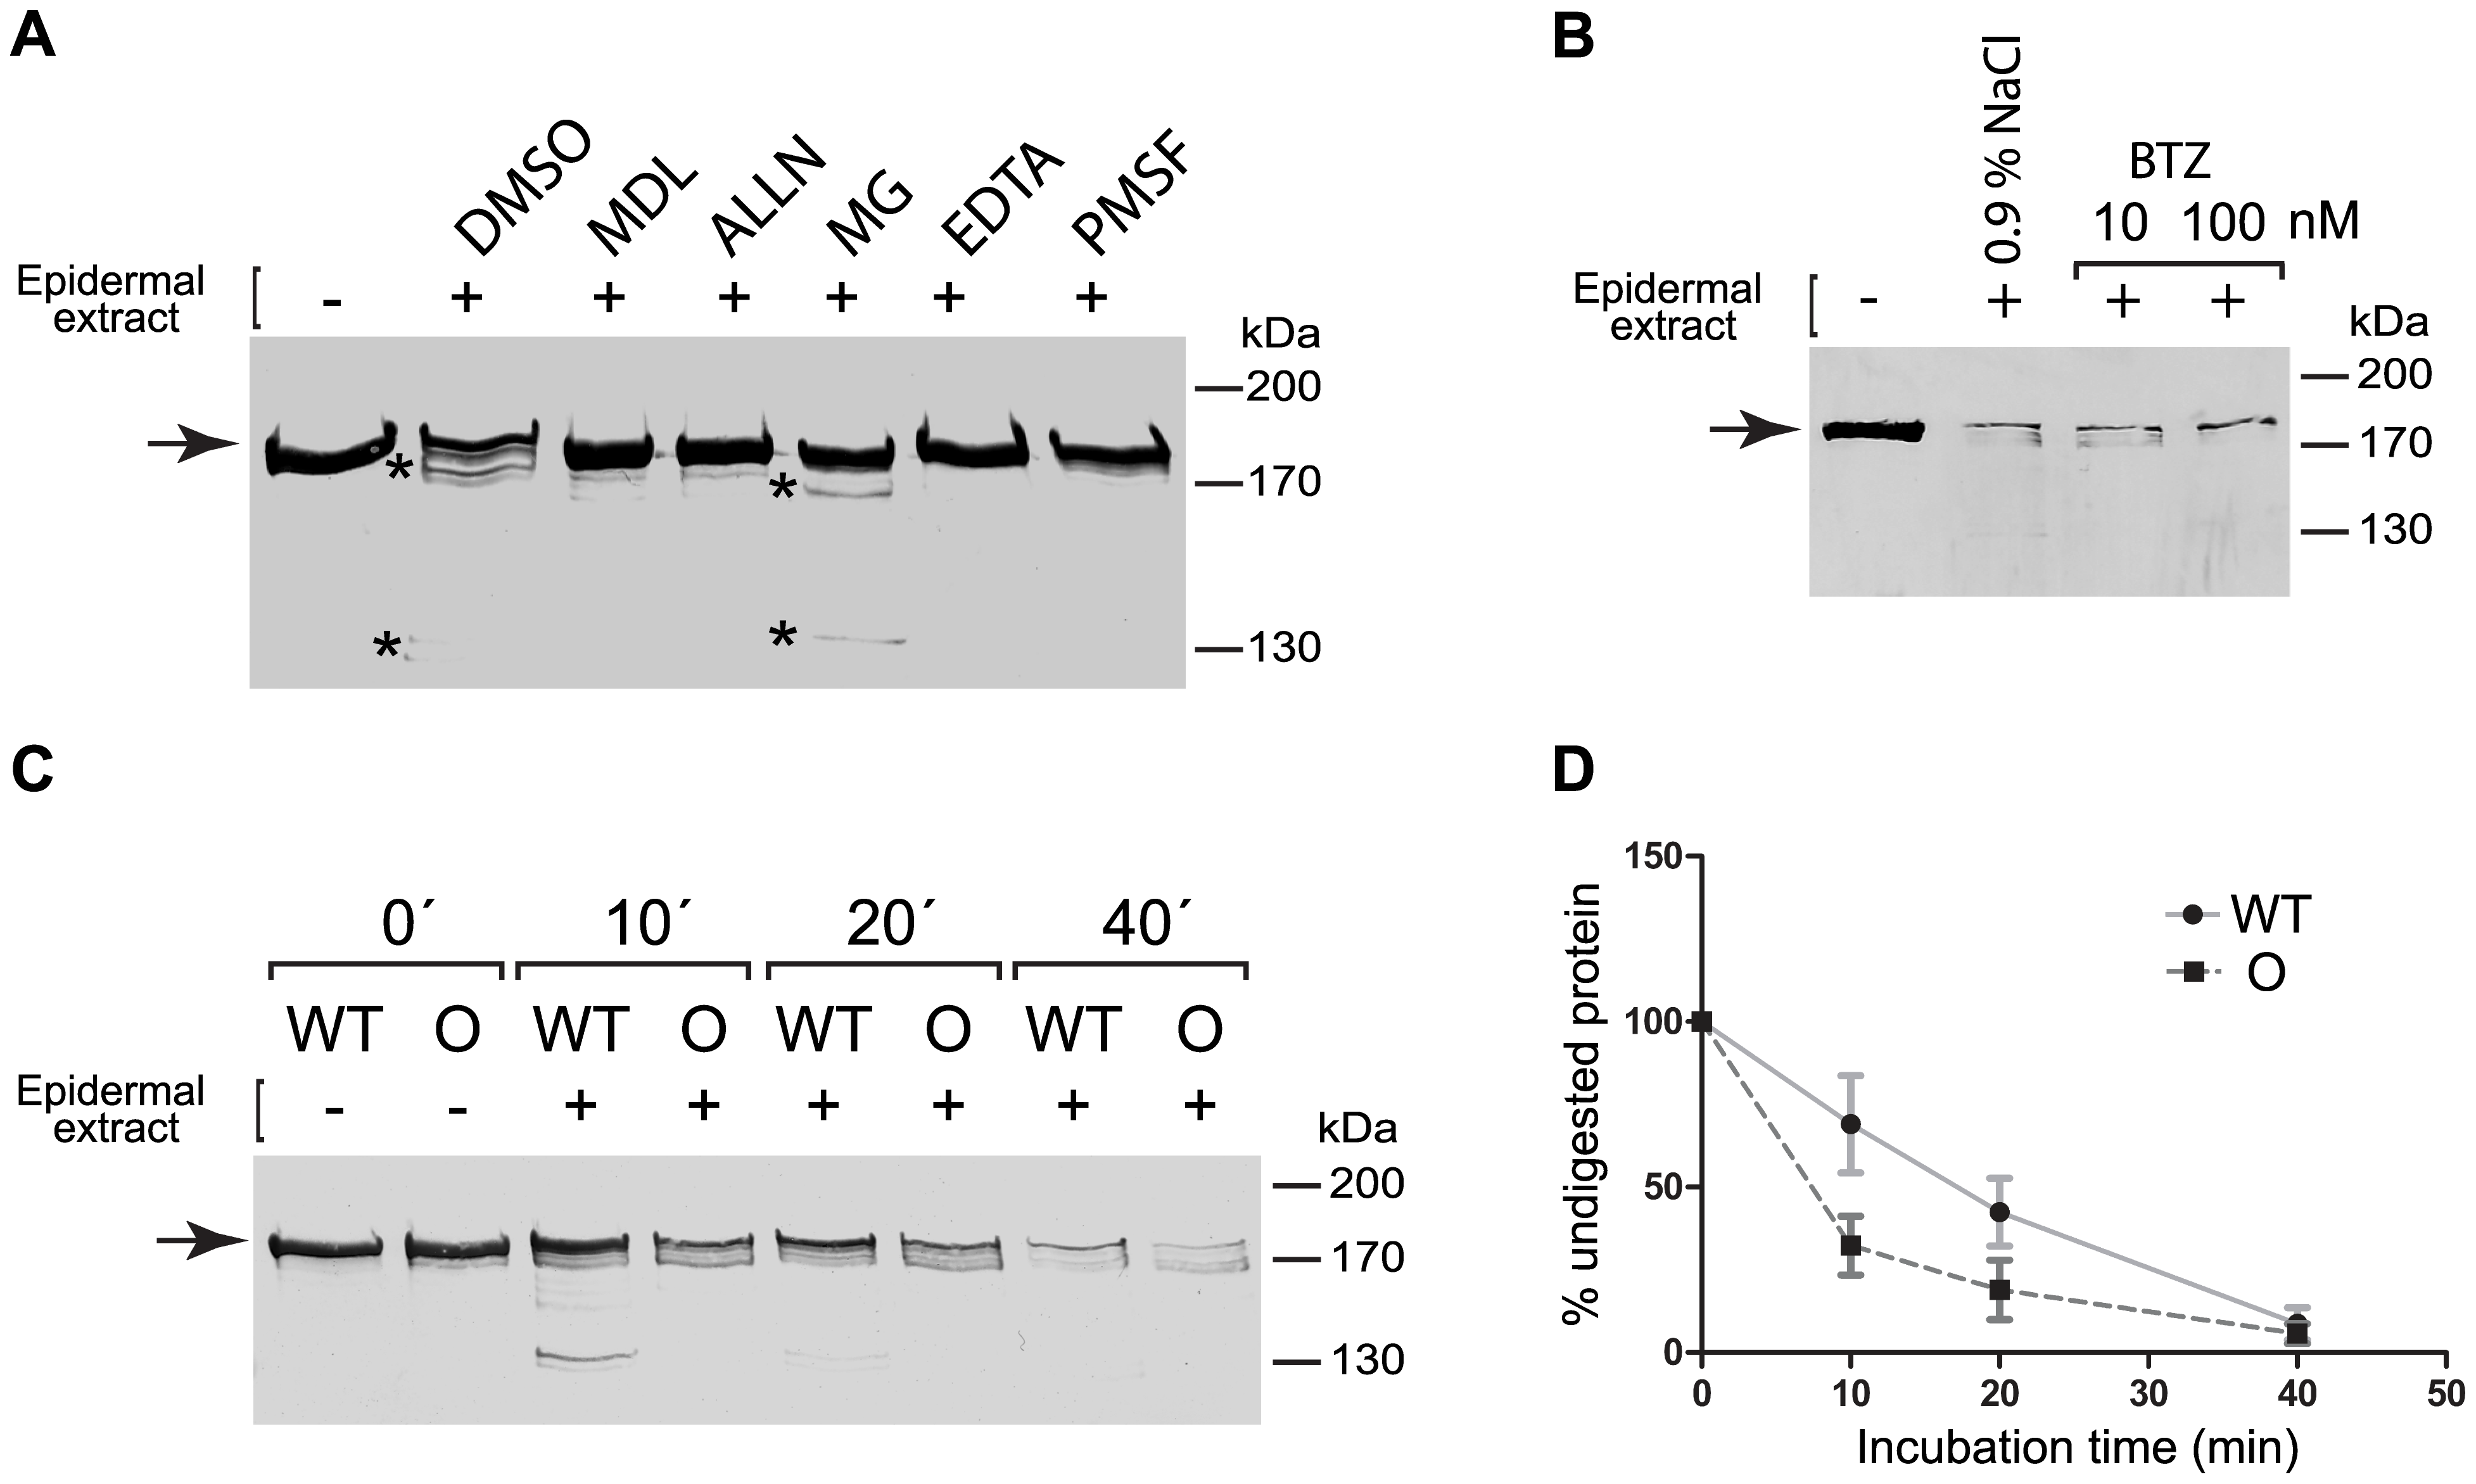 The Ogna mutation sensitizes plectin's RD to degradation by epidermis-specific proteolytic activities.